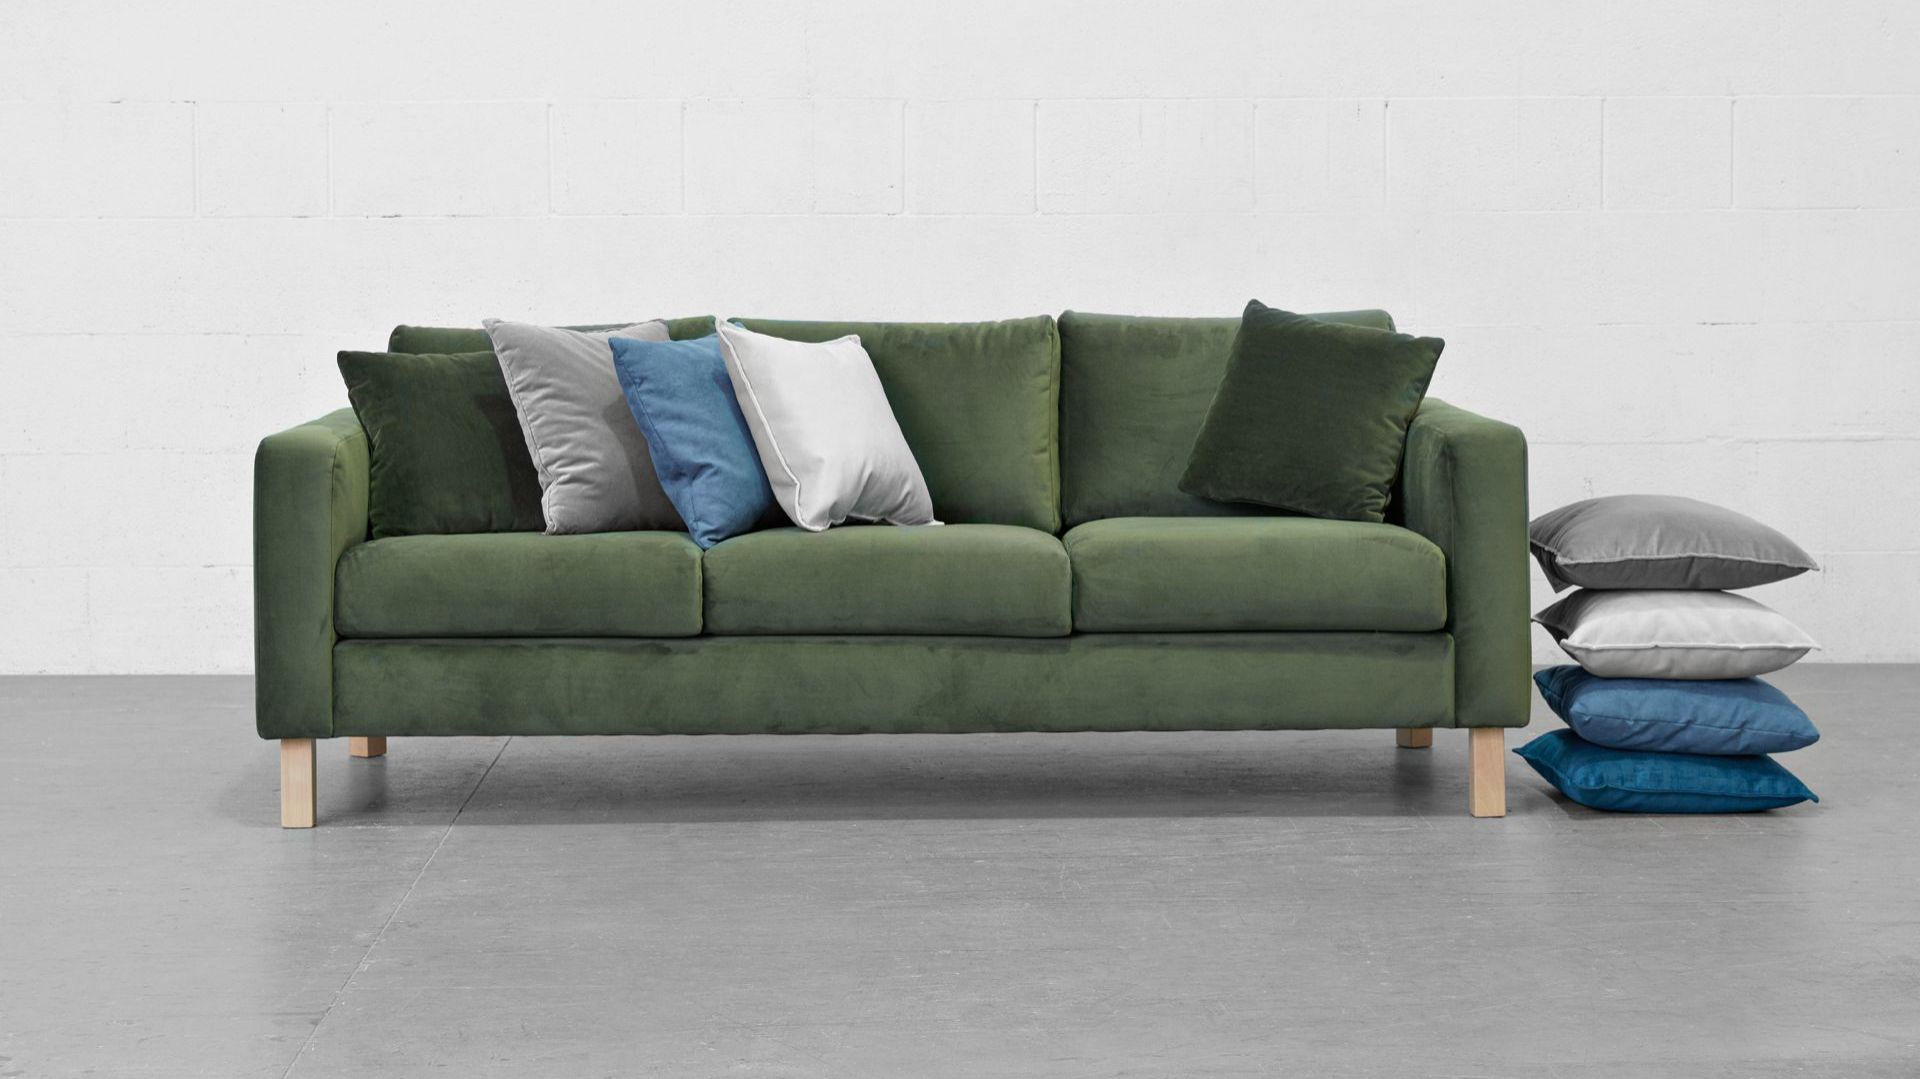 Sofa kera black red white sofa kera black red white for Red white sofa